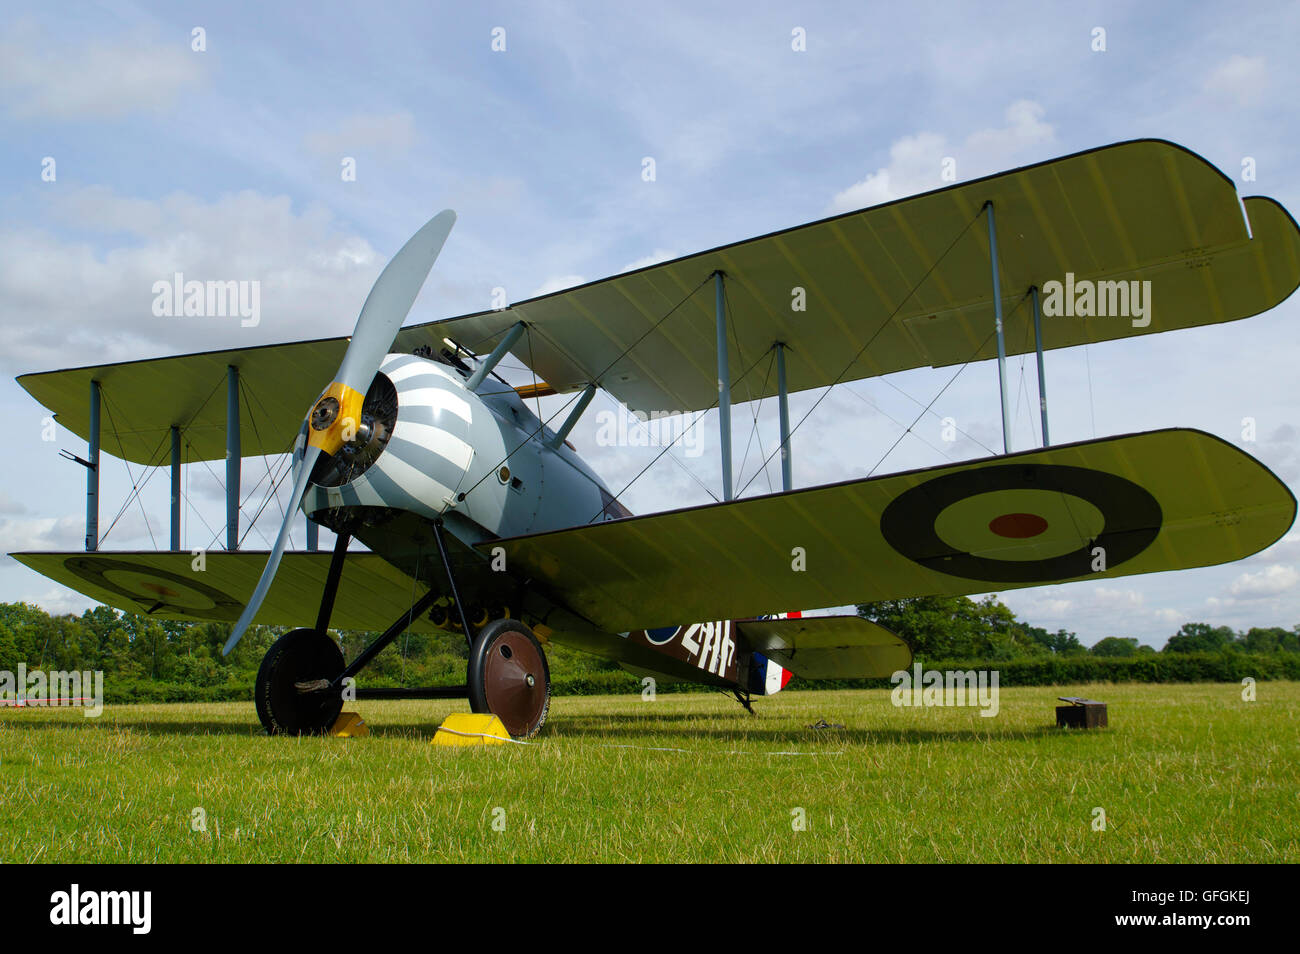 Sopwith Snipe replica at Stow Maries airfield Essex - Stock Image